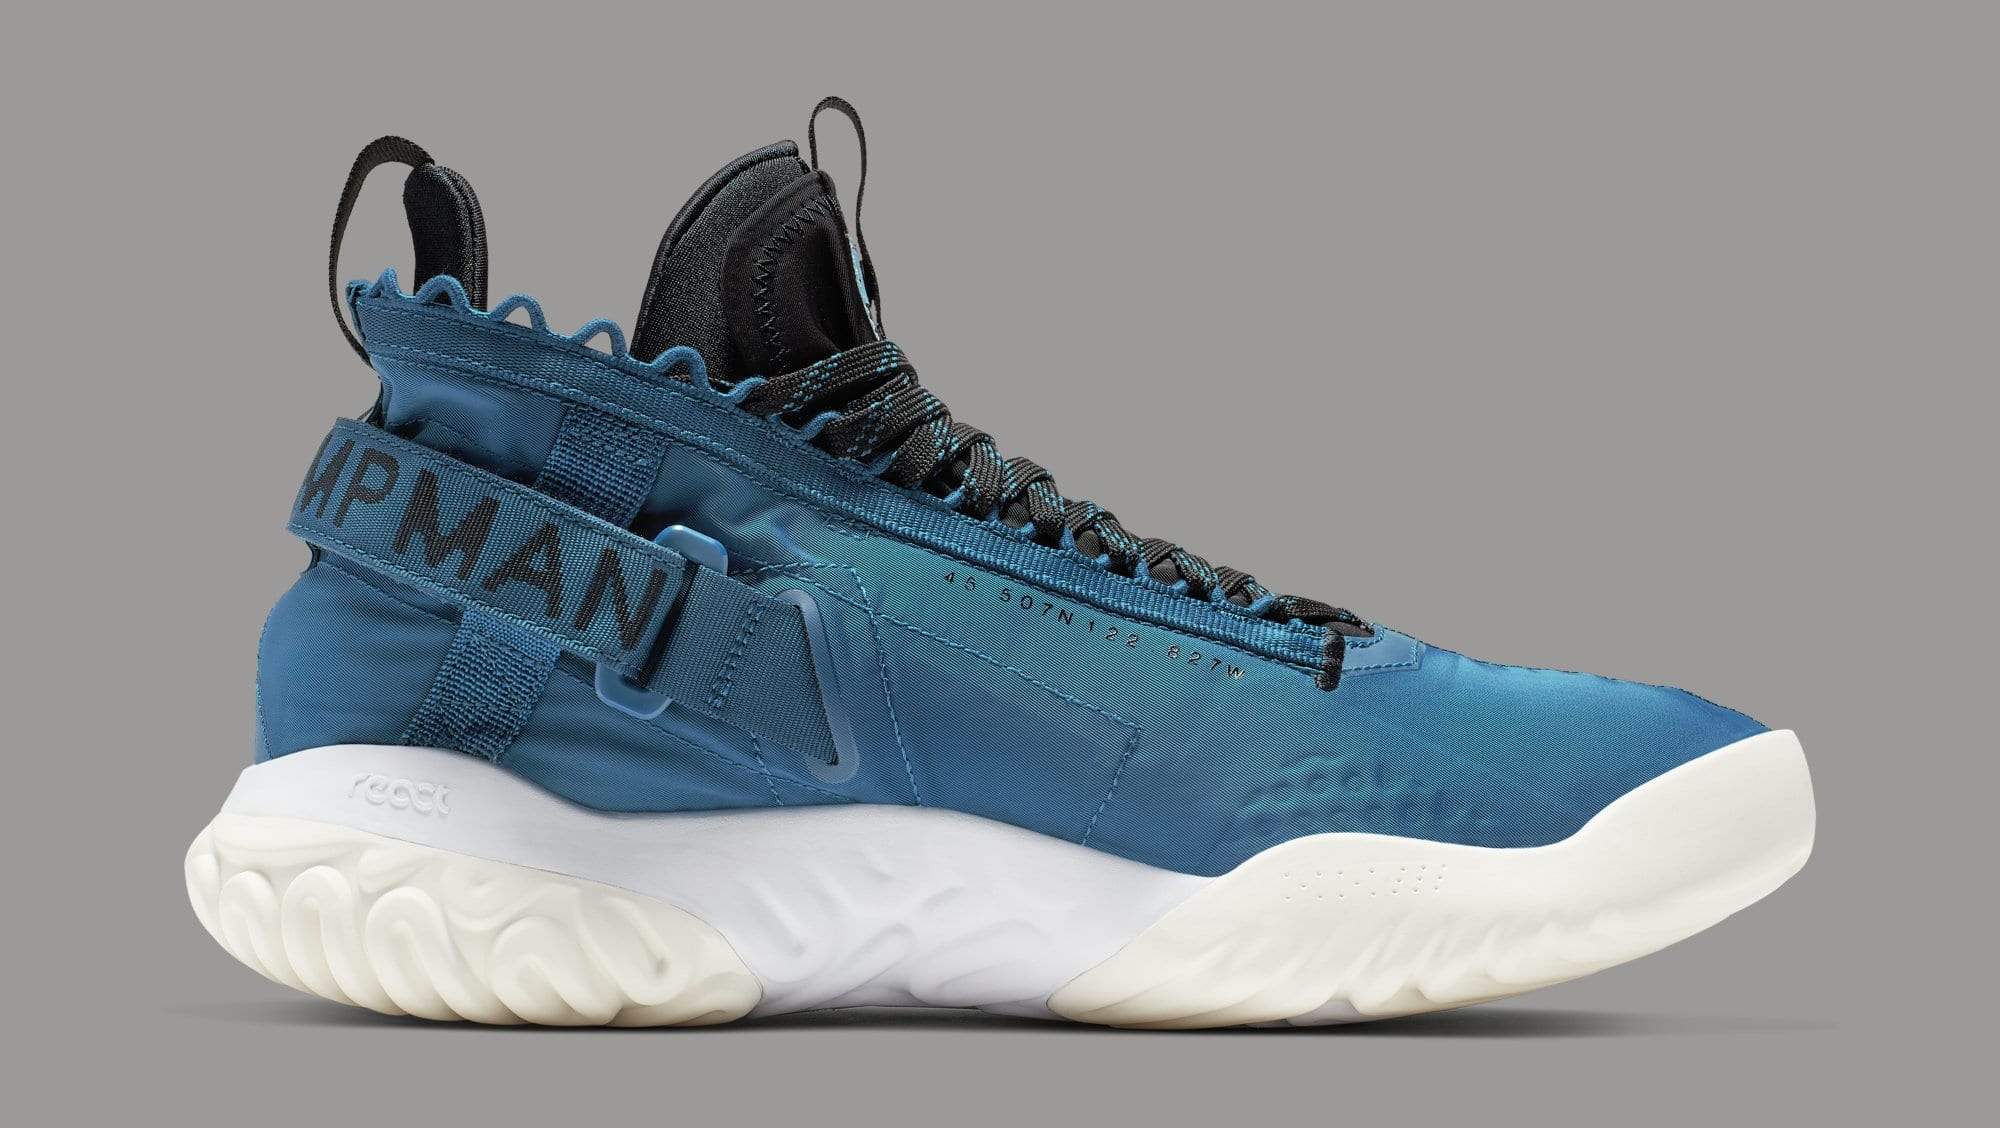 Jordan Proto-React 'Maybe I Destroyed the Game' BV1654-301 (Medial)